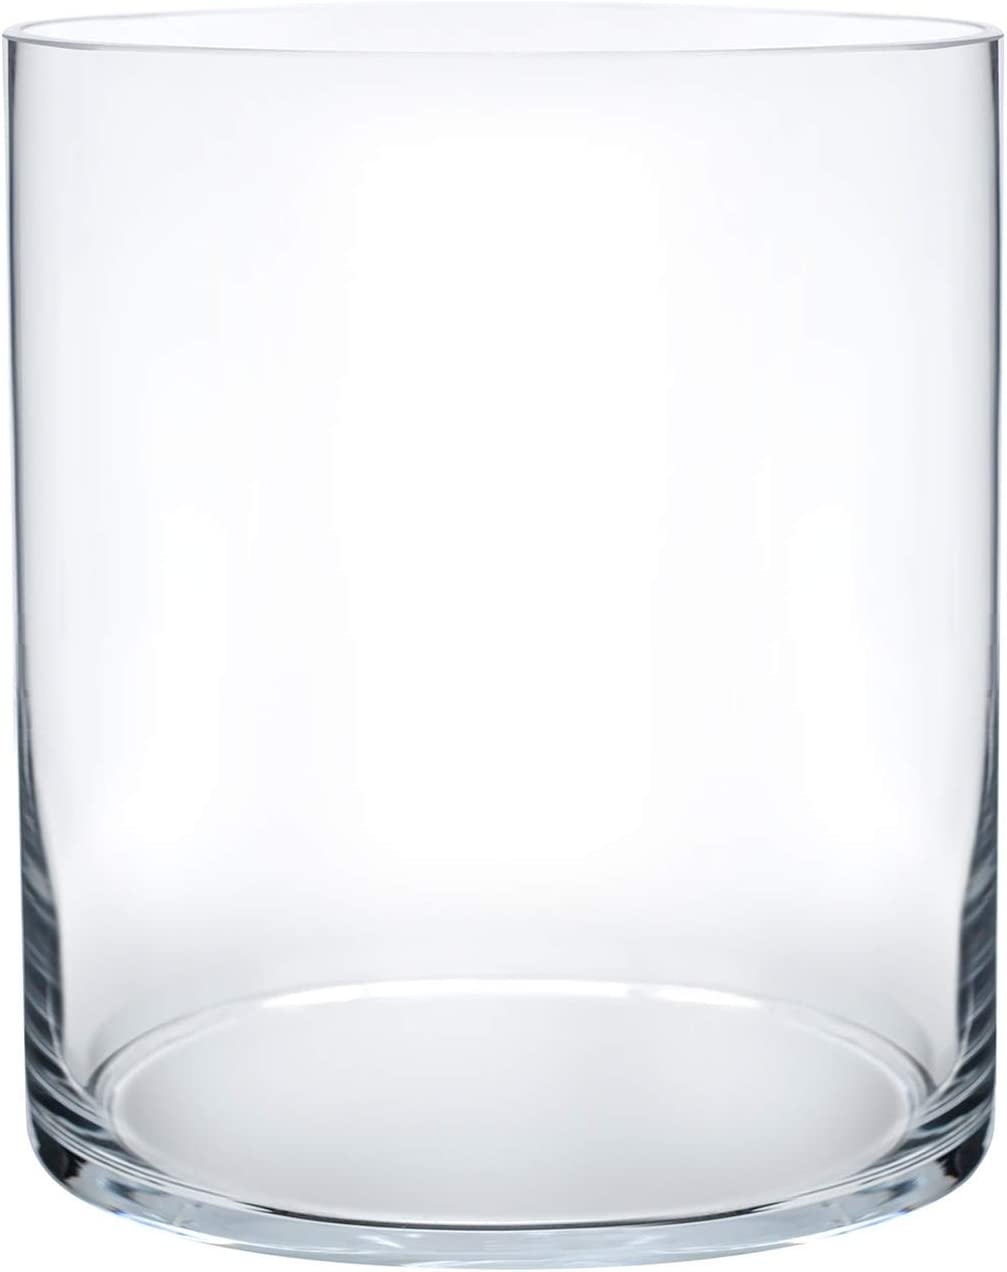 """Royal Imports Flower Glass Vase Decorative Centerpiece for Home or Wedding Cylinder Shape, 8"""" Tall, 6"""" Opening, Clear"""